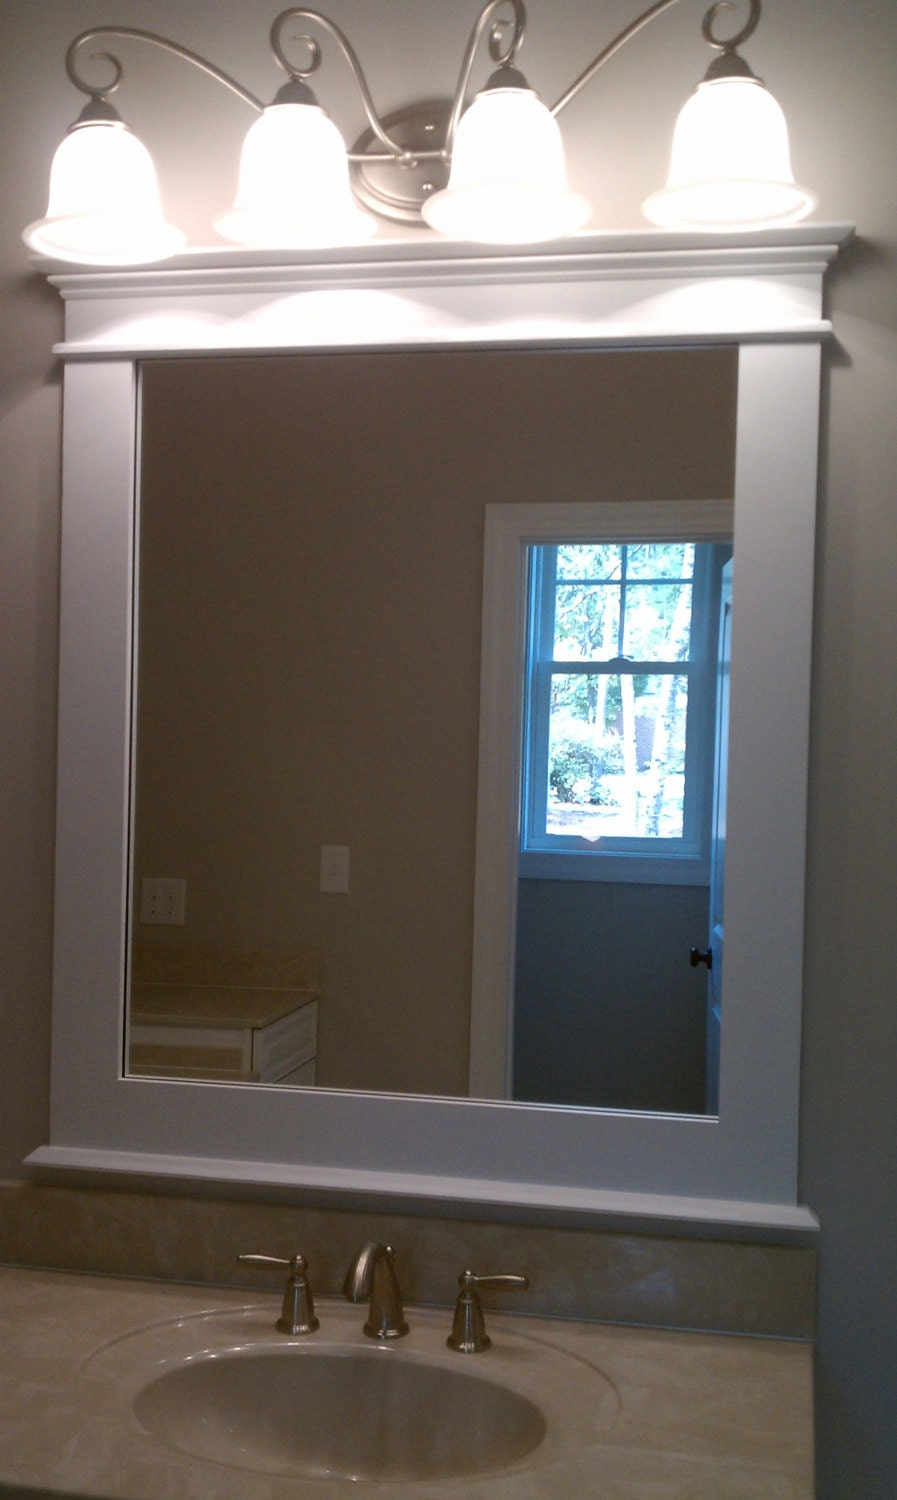 Craftsman style framed mirror by redclaywoodworks on etsy for Craftsman mirrors bathroom